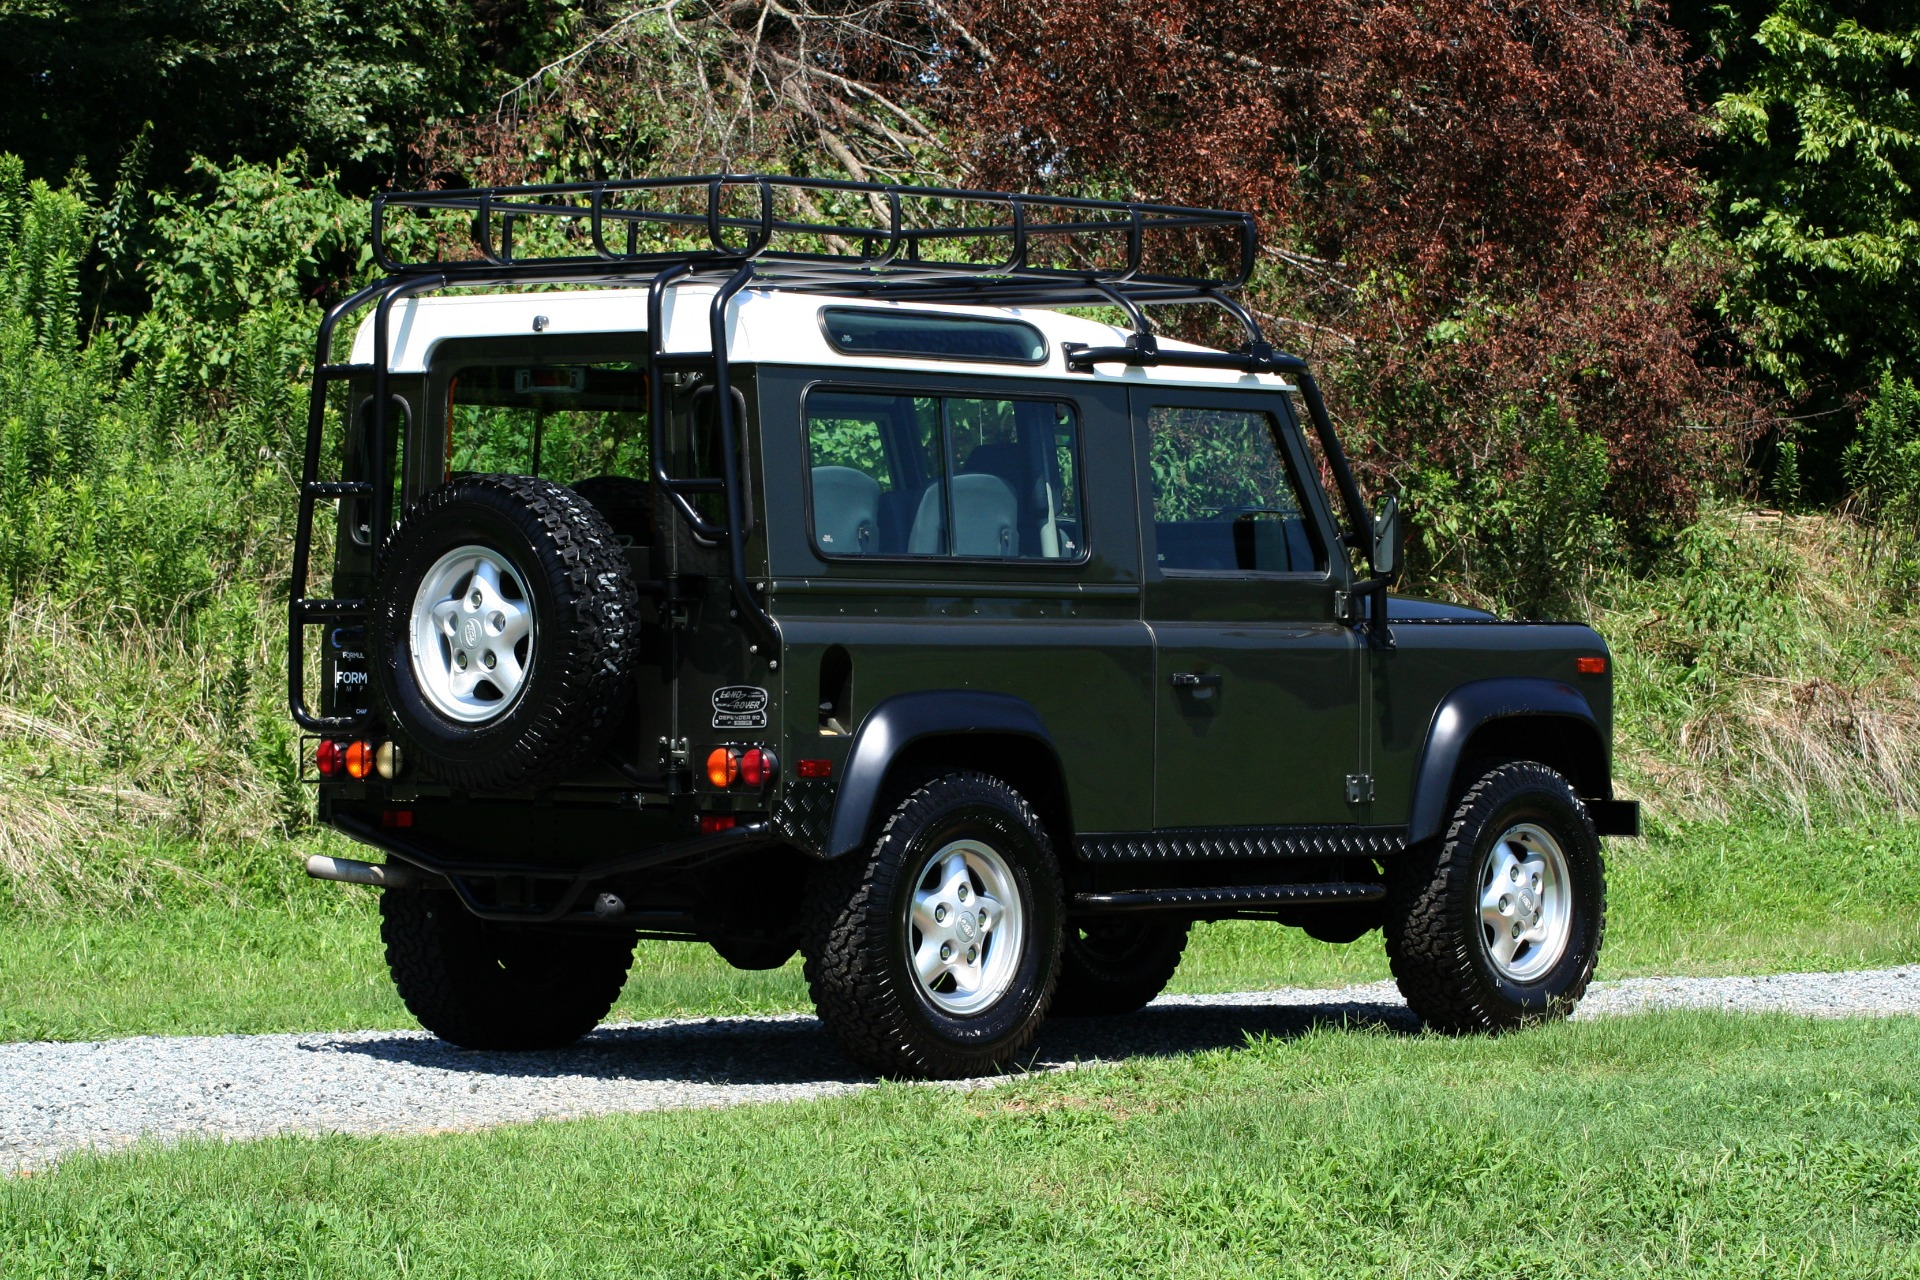 Used 1997 Land Rover DEFENDER 90 LIMITED EDITION / HARD-TOP / 4WD / FULLY RESTORED / LOW MILES for sale $119,000 at Formula Imports in Charlotte NC 28227 9